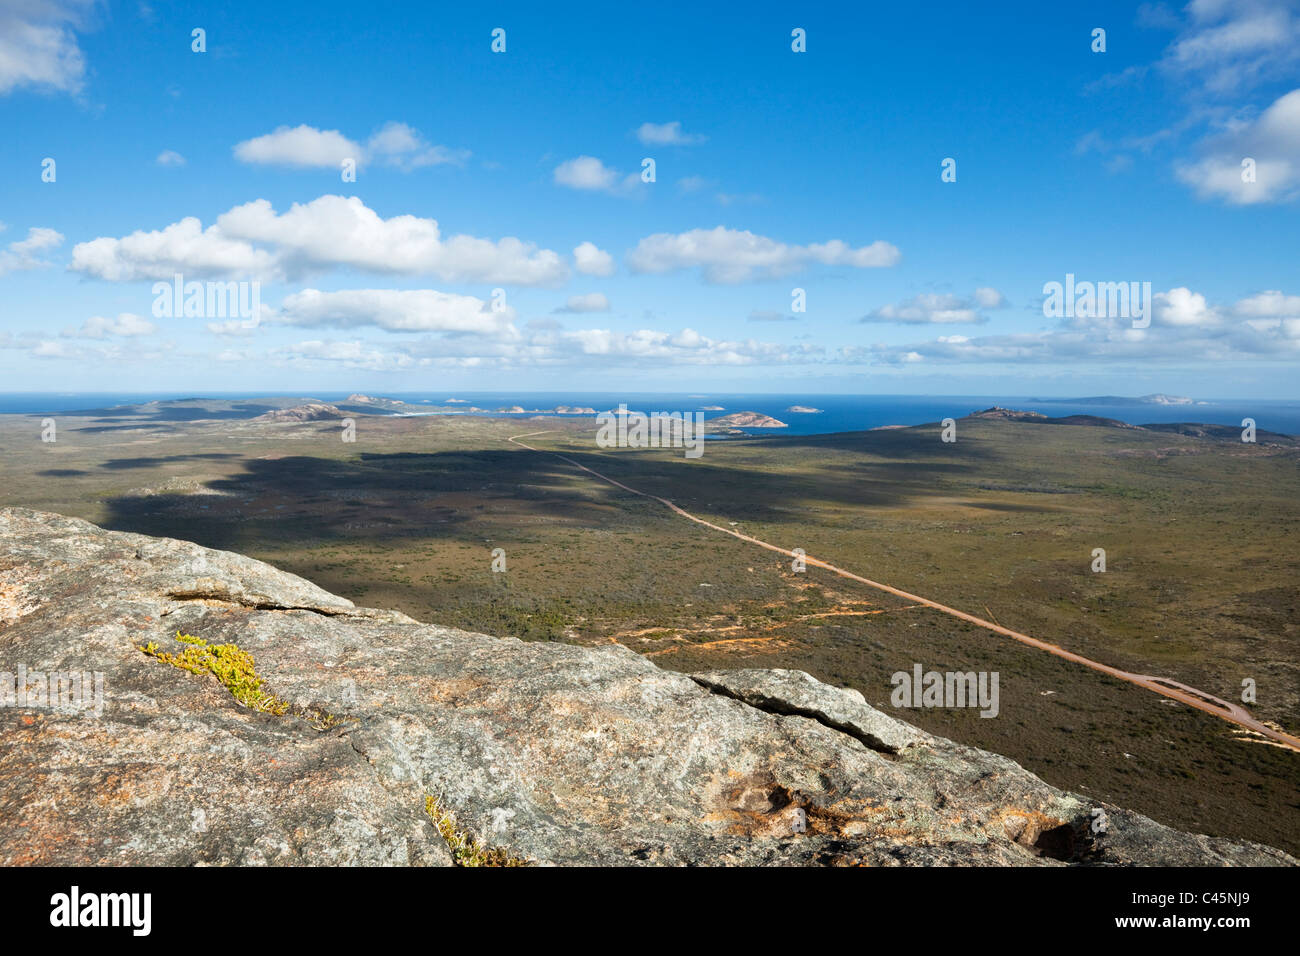 View of Cape Le Grand National Park from Frenchman Peak. Cape Le Grand National Park, Esperance, Western Australia, - Stock Image